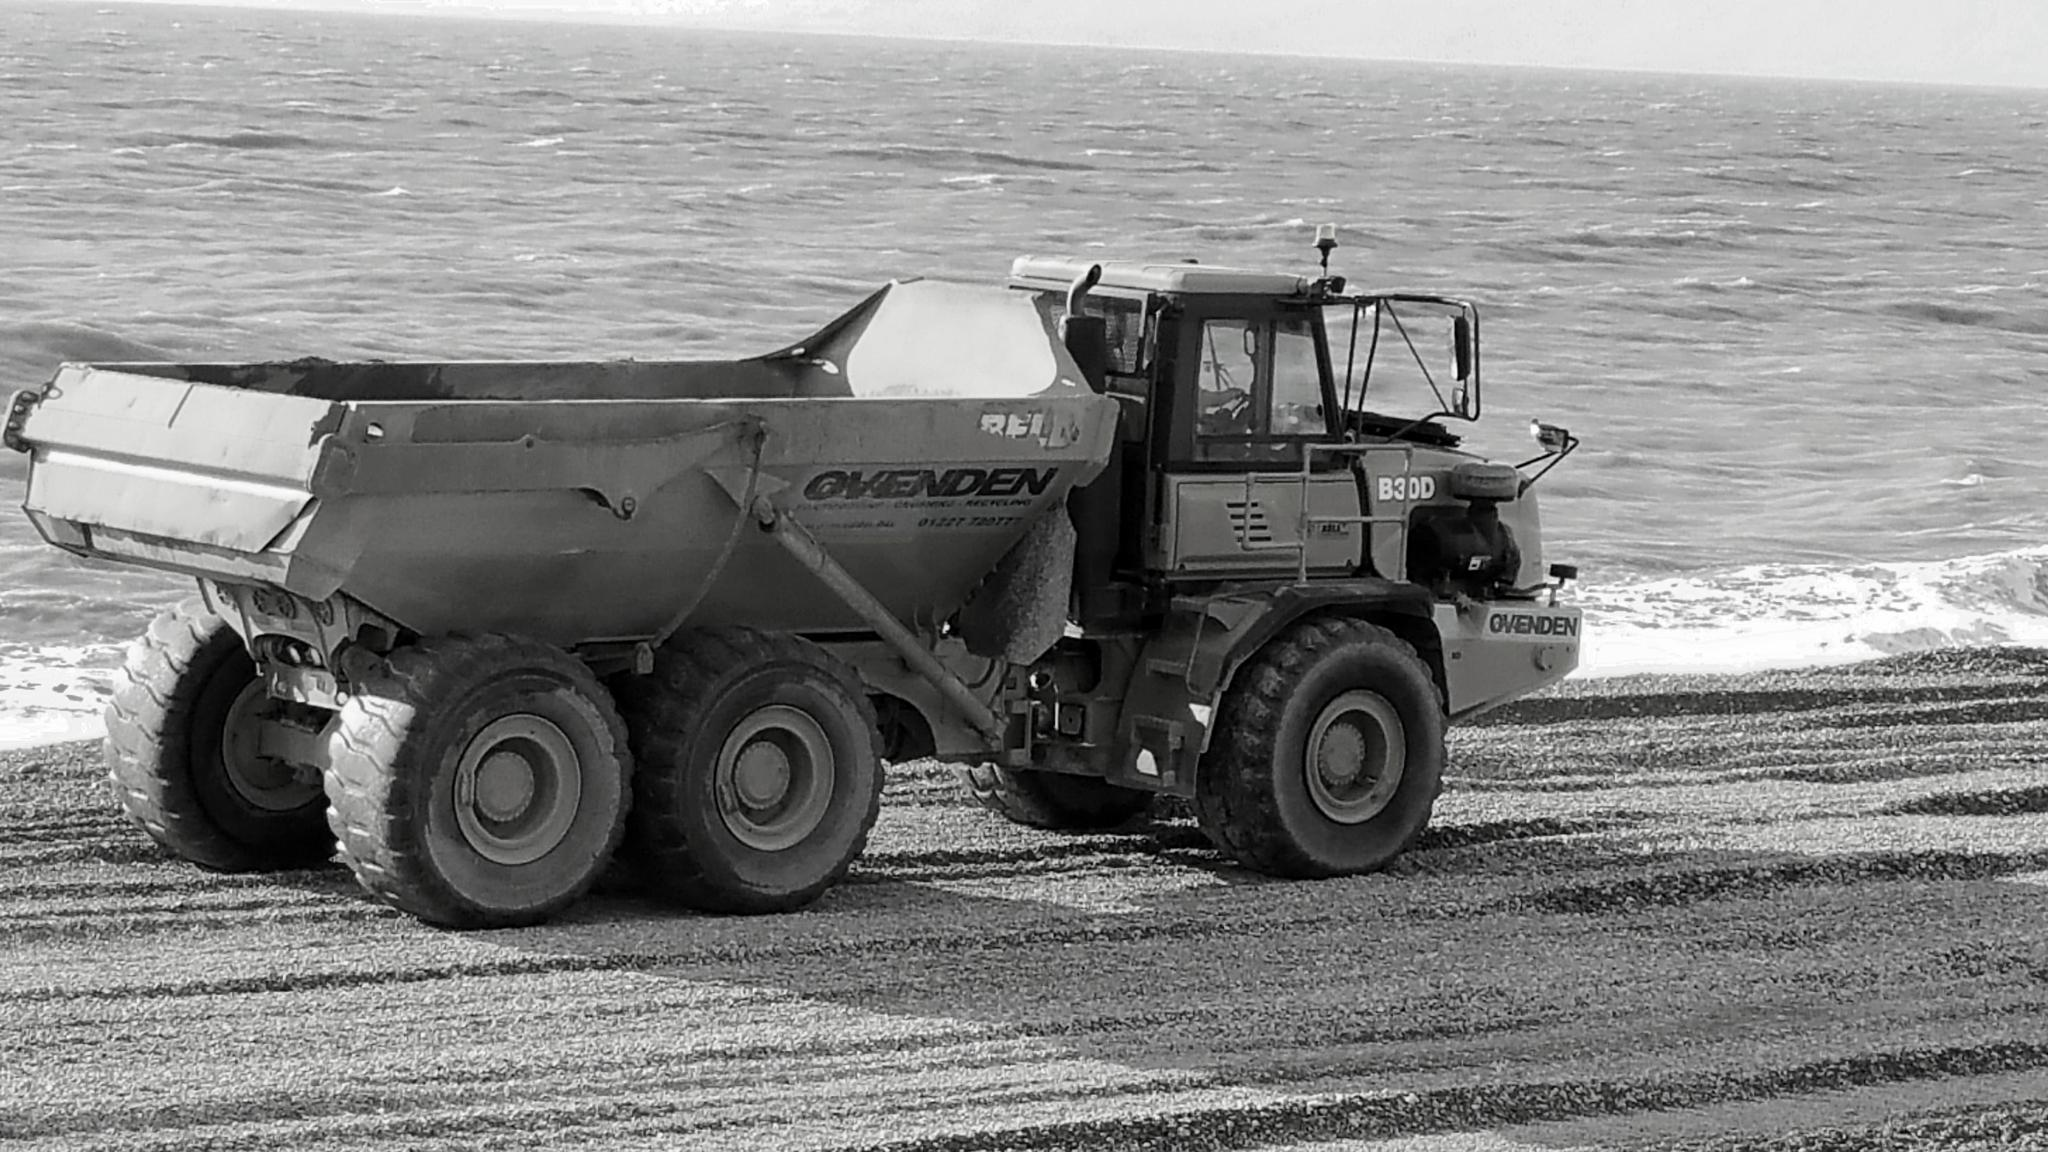 Big toy on the beach!! by Jayne Aveline